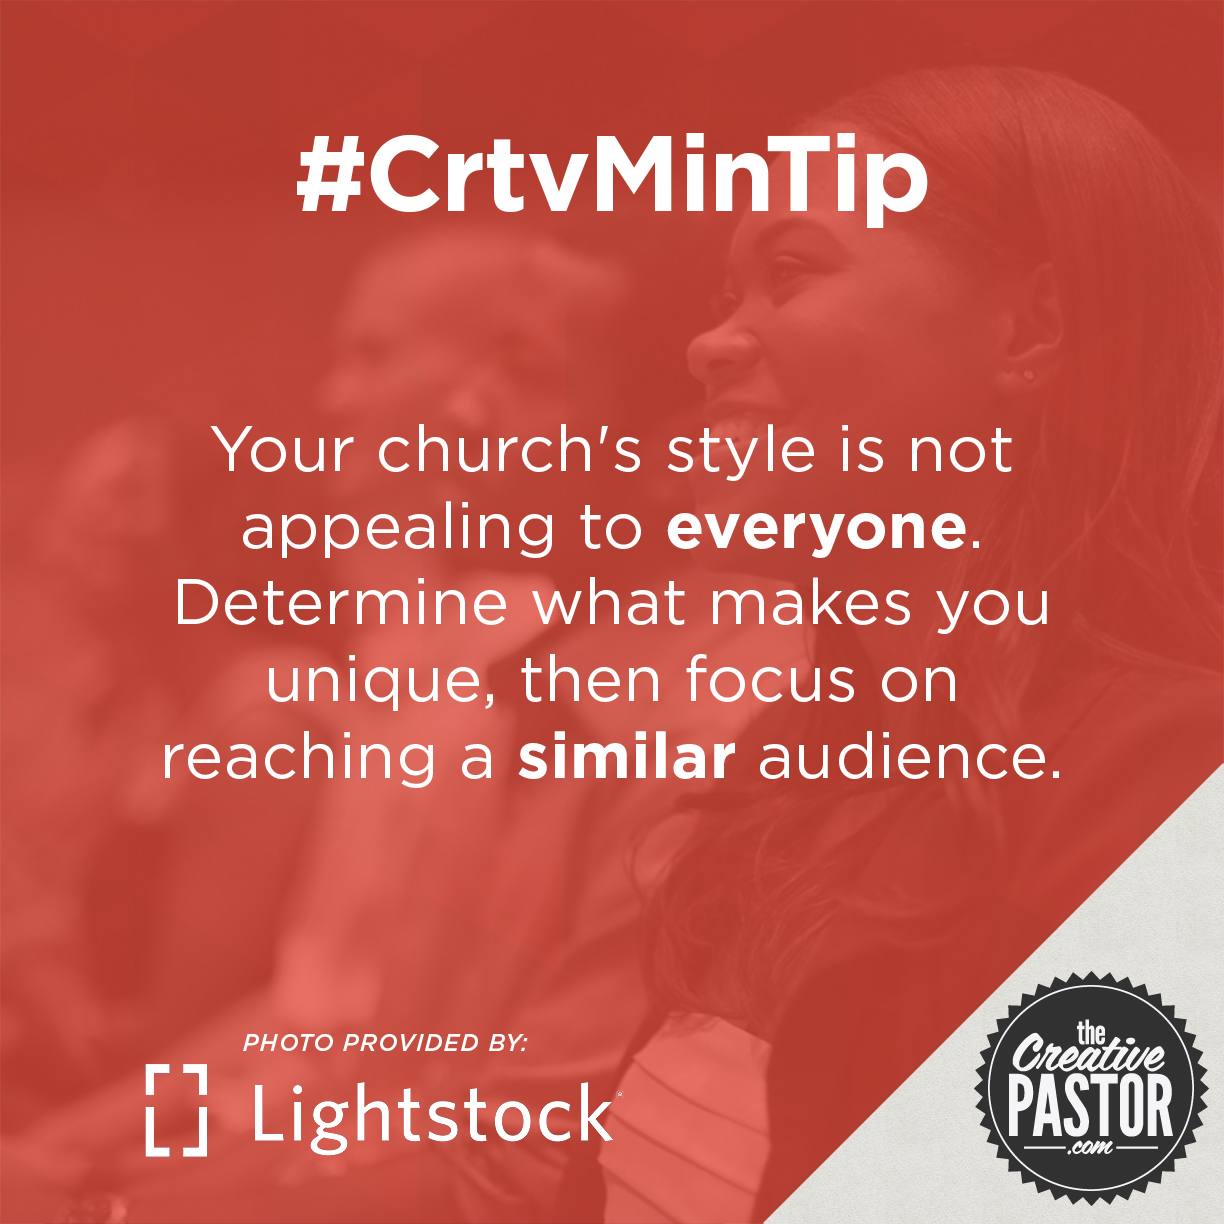 Your church's style will not be appealing to everyone. Determine what makes you unique, then focus on reaching a similar audience.